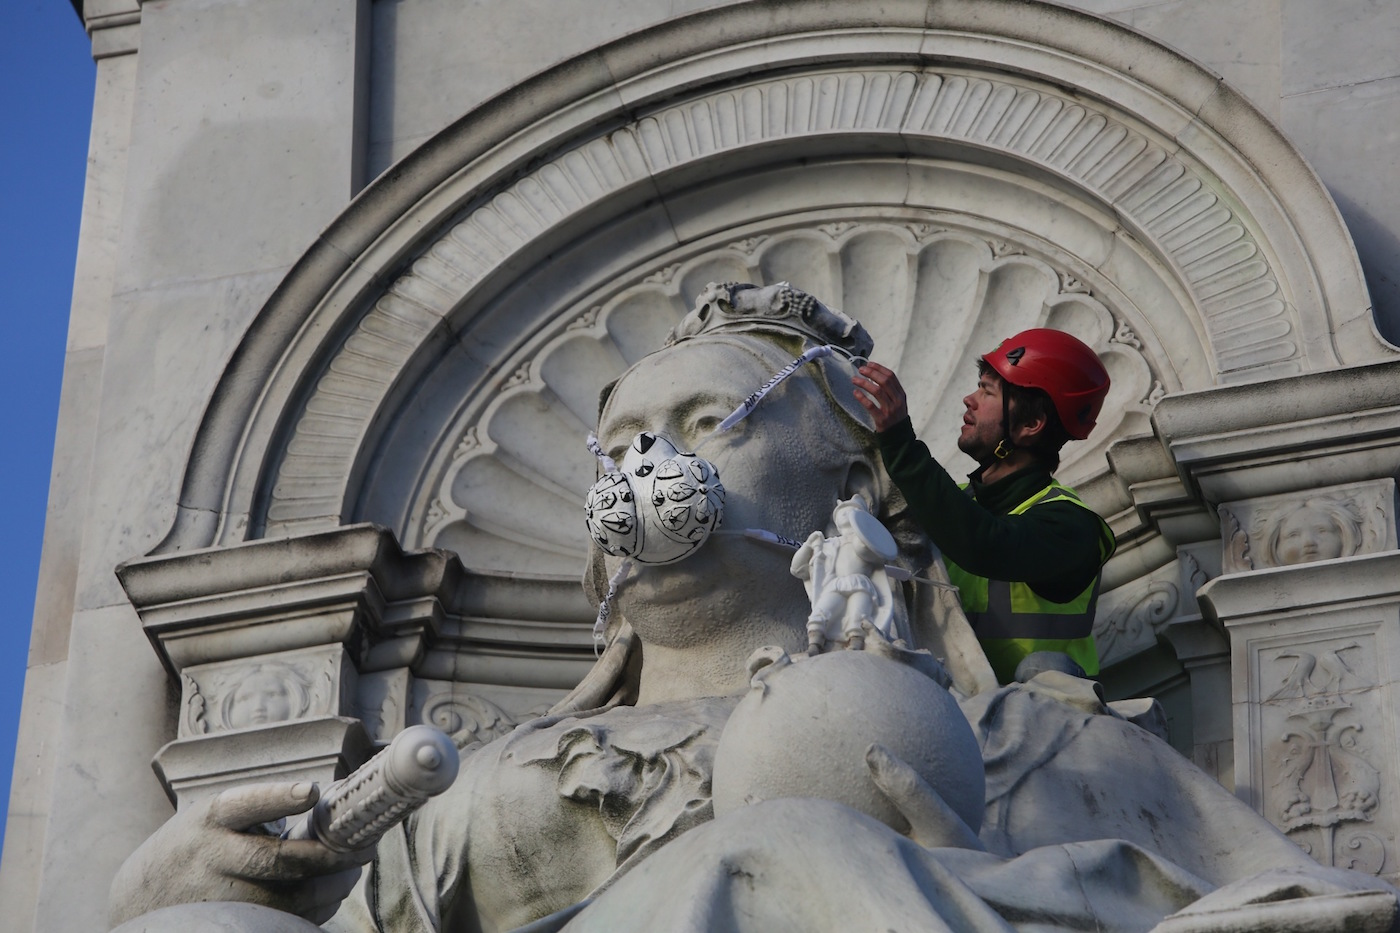 Greenpeace activists fit The Victoria Memorial in front of Buckingham Palace with an emergency face mask (photo by John Cobb)